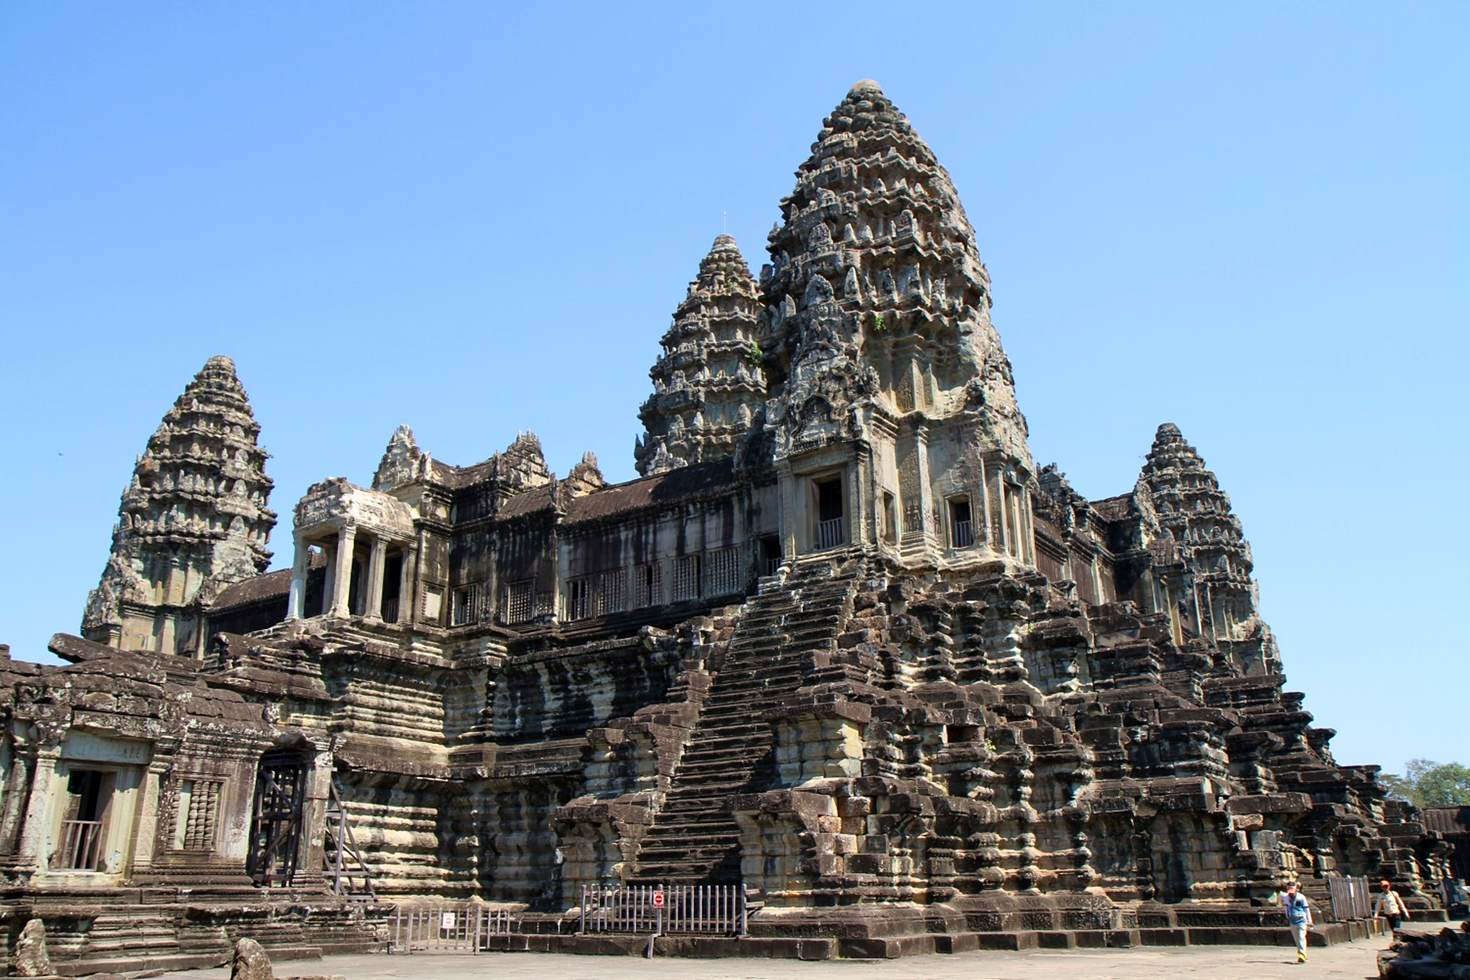 The outsite beauty of Cenral Tower of Angkor Wat